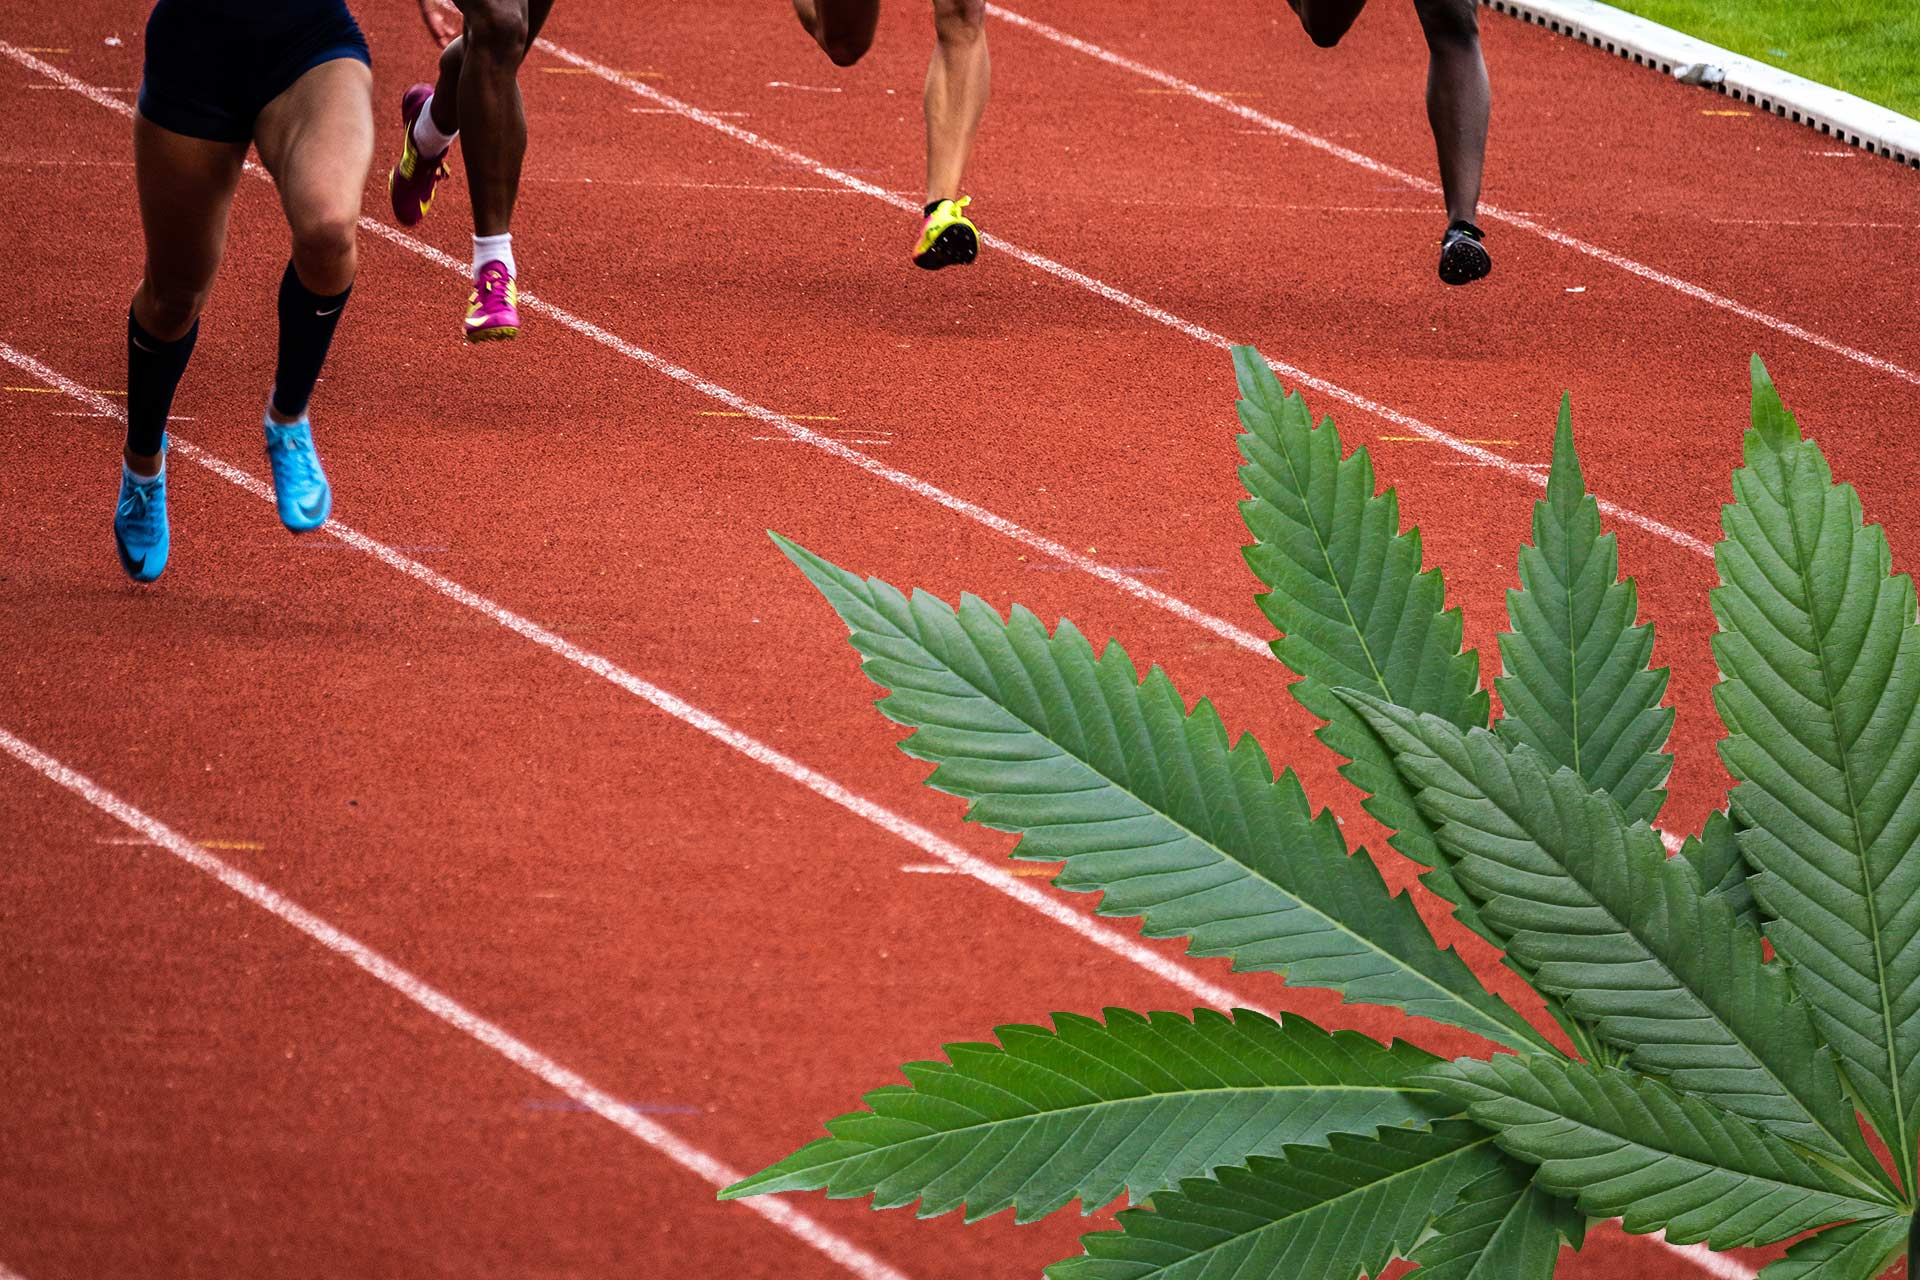 runners on a track with cannabis leaves in the foreground